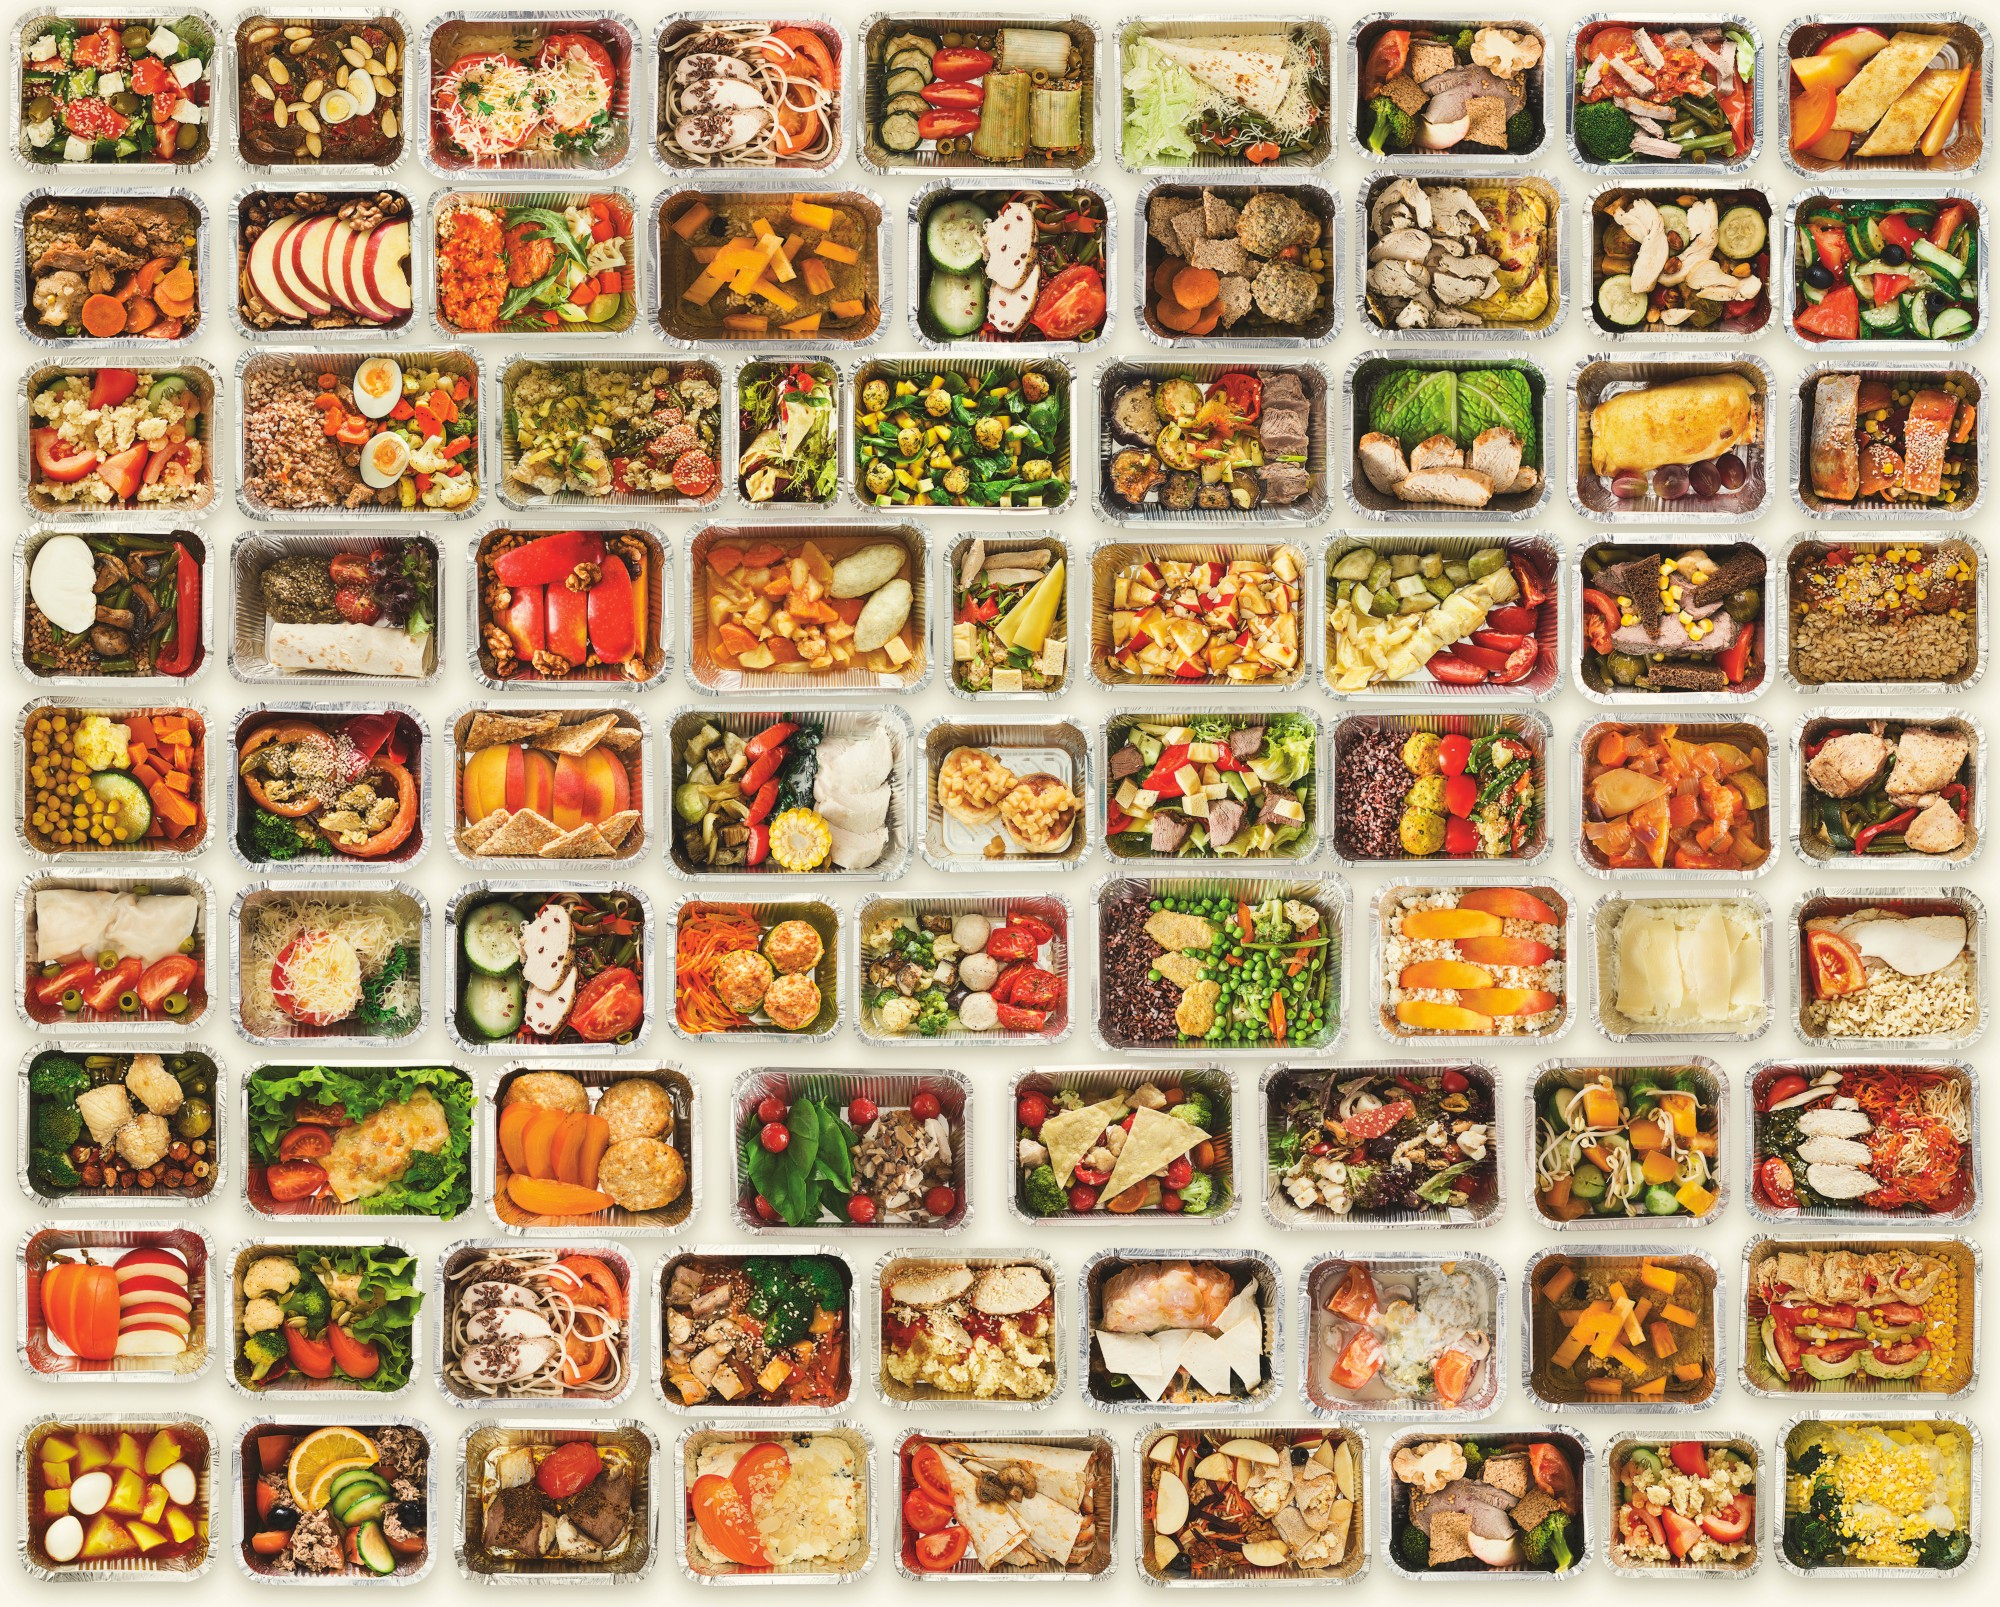 A set of a variety of healthy foods in take away food boxes against a white background.